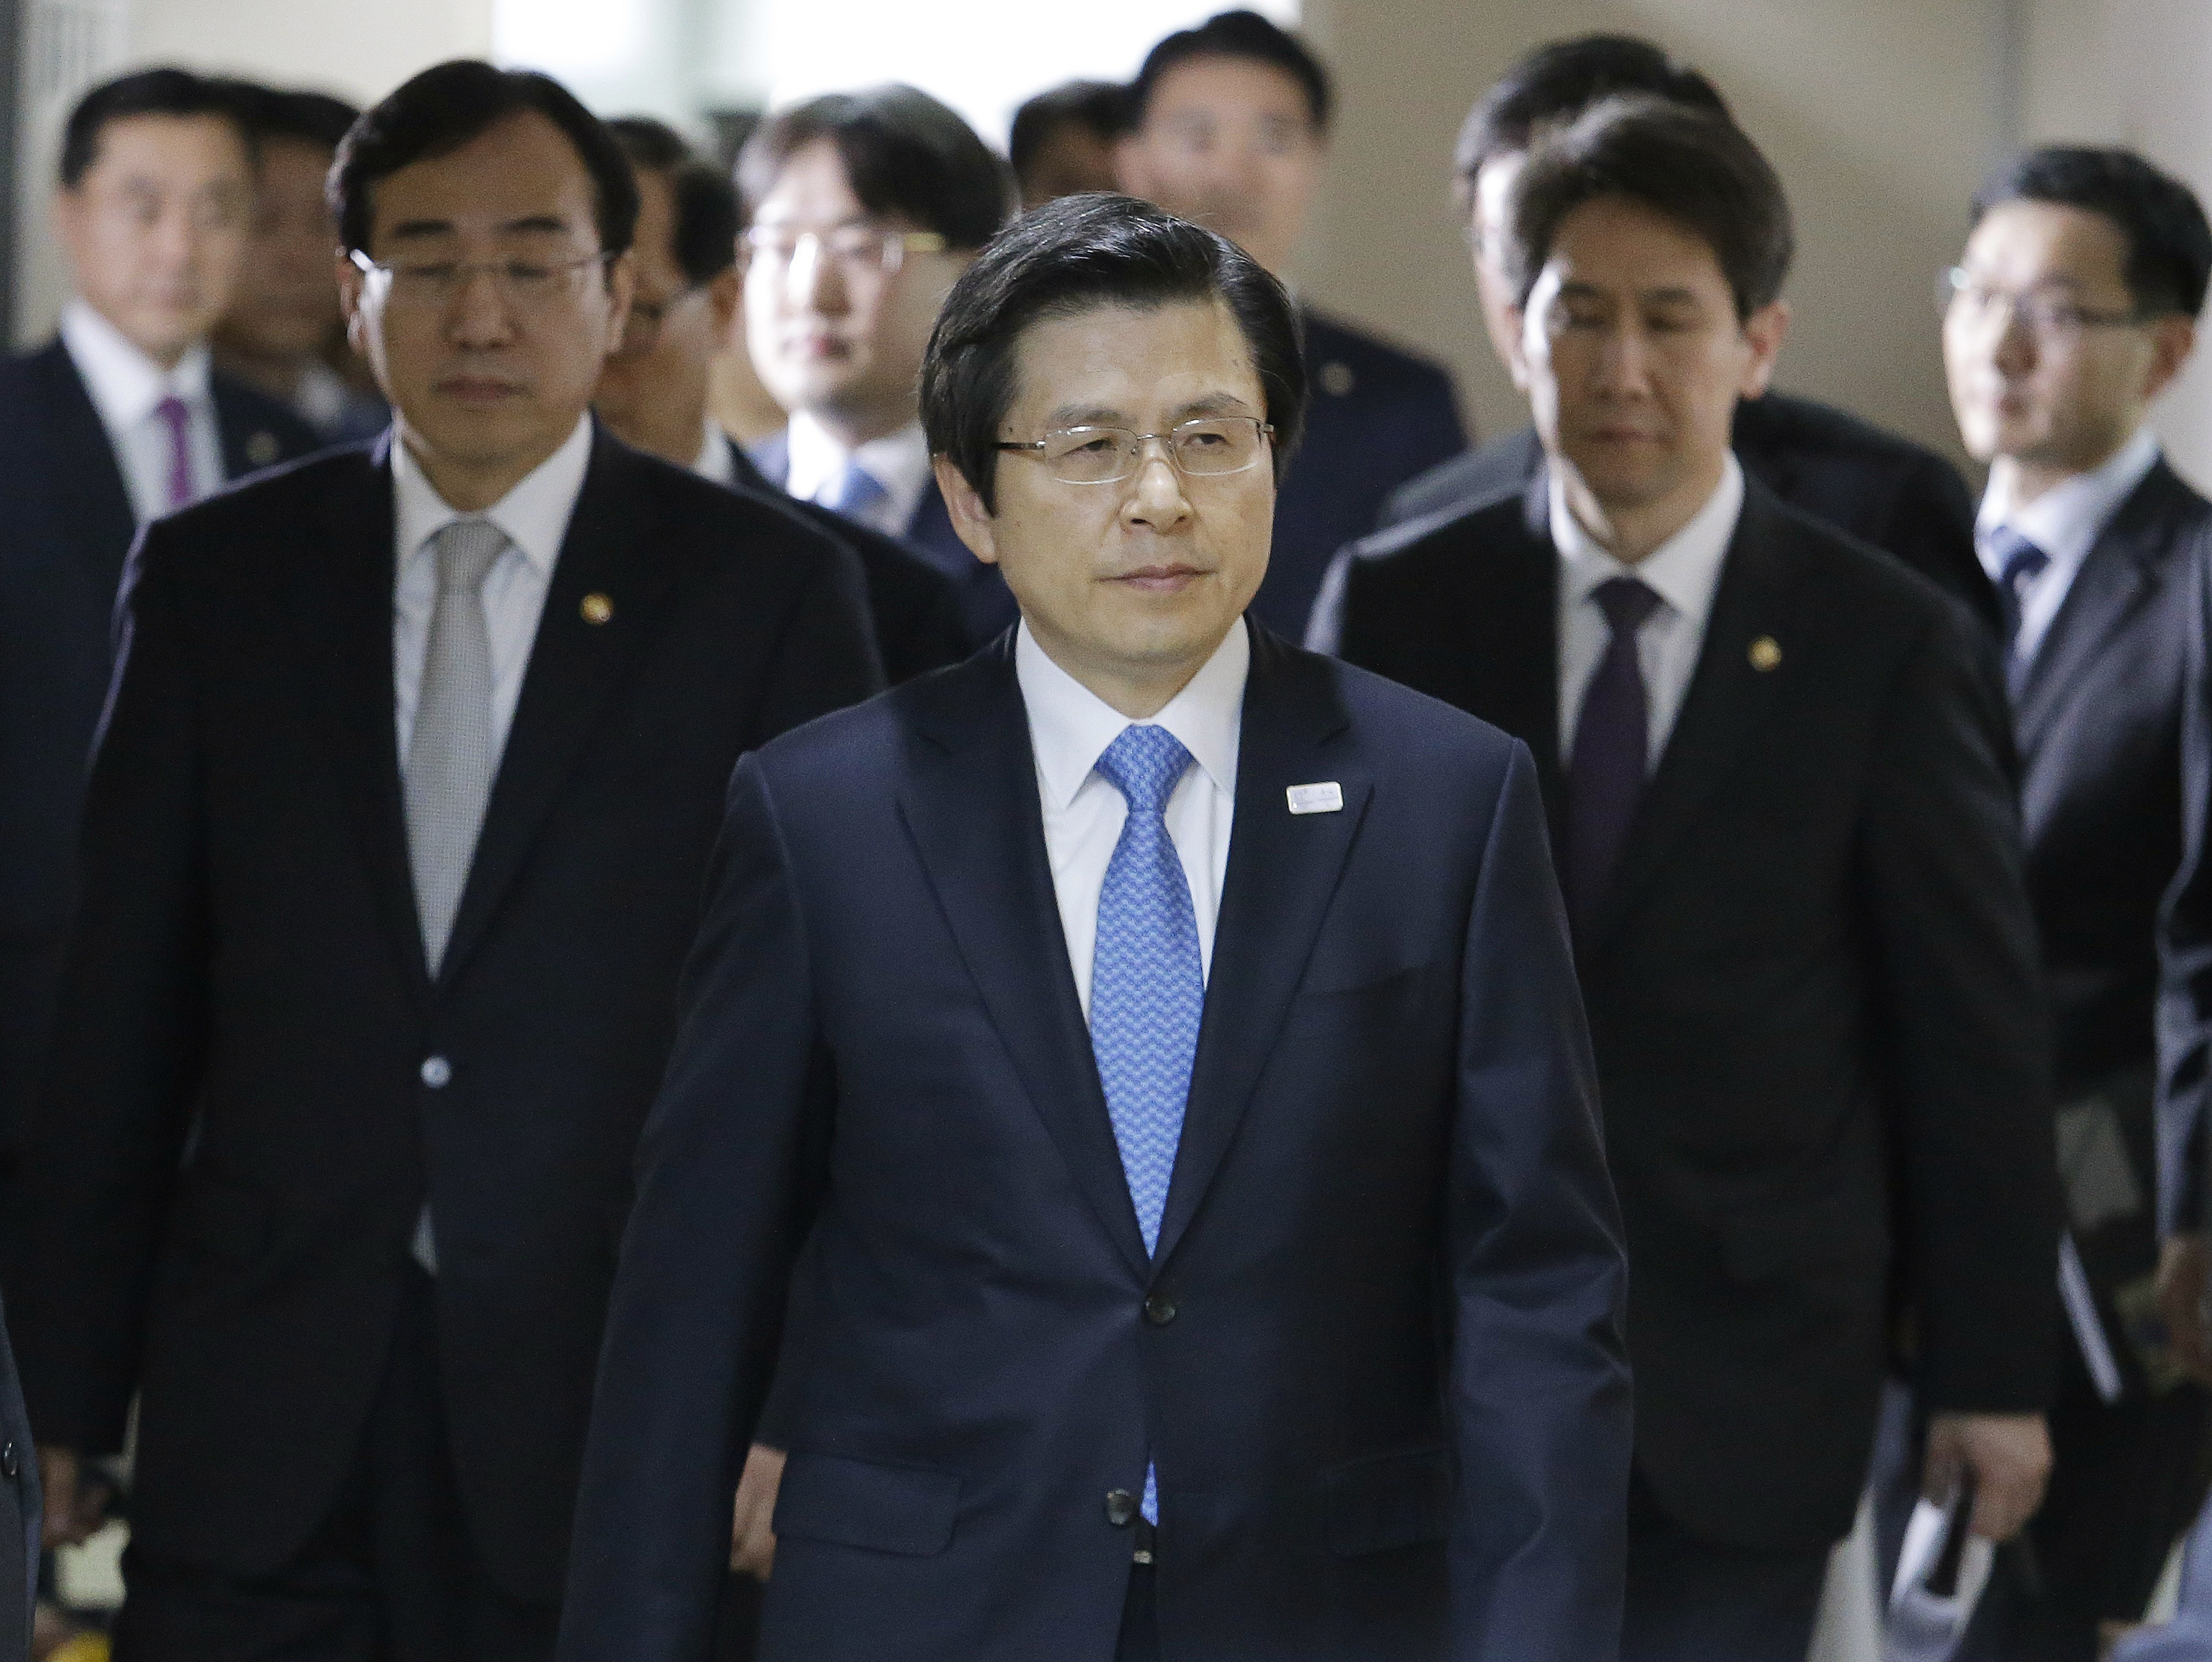 South Korean acting leader and Prime Minister Hwang Kyo-ahn, center, arrives to hold a press conference at the government complex in Seoul, South Korea on March 10, 2017. (AP Photo/Ahn Young-joon)